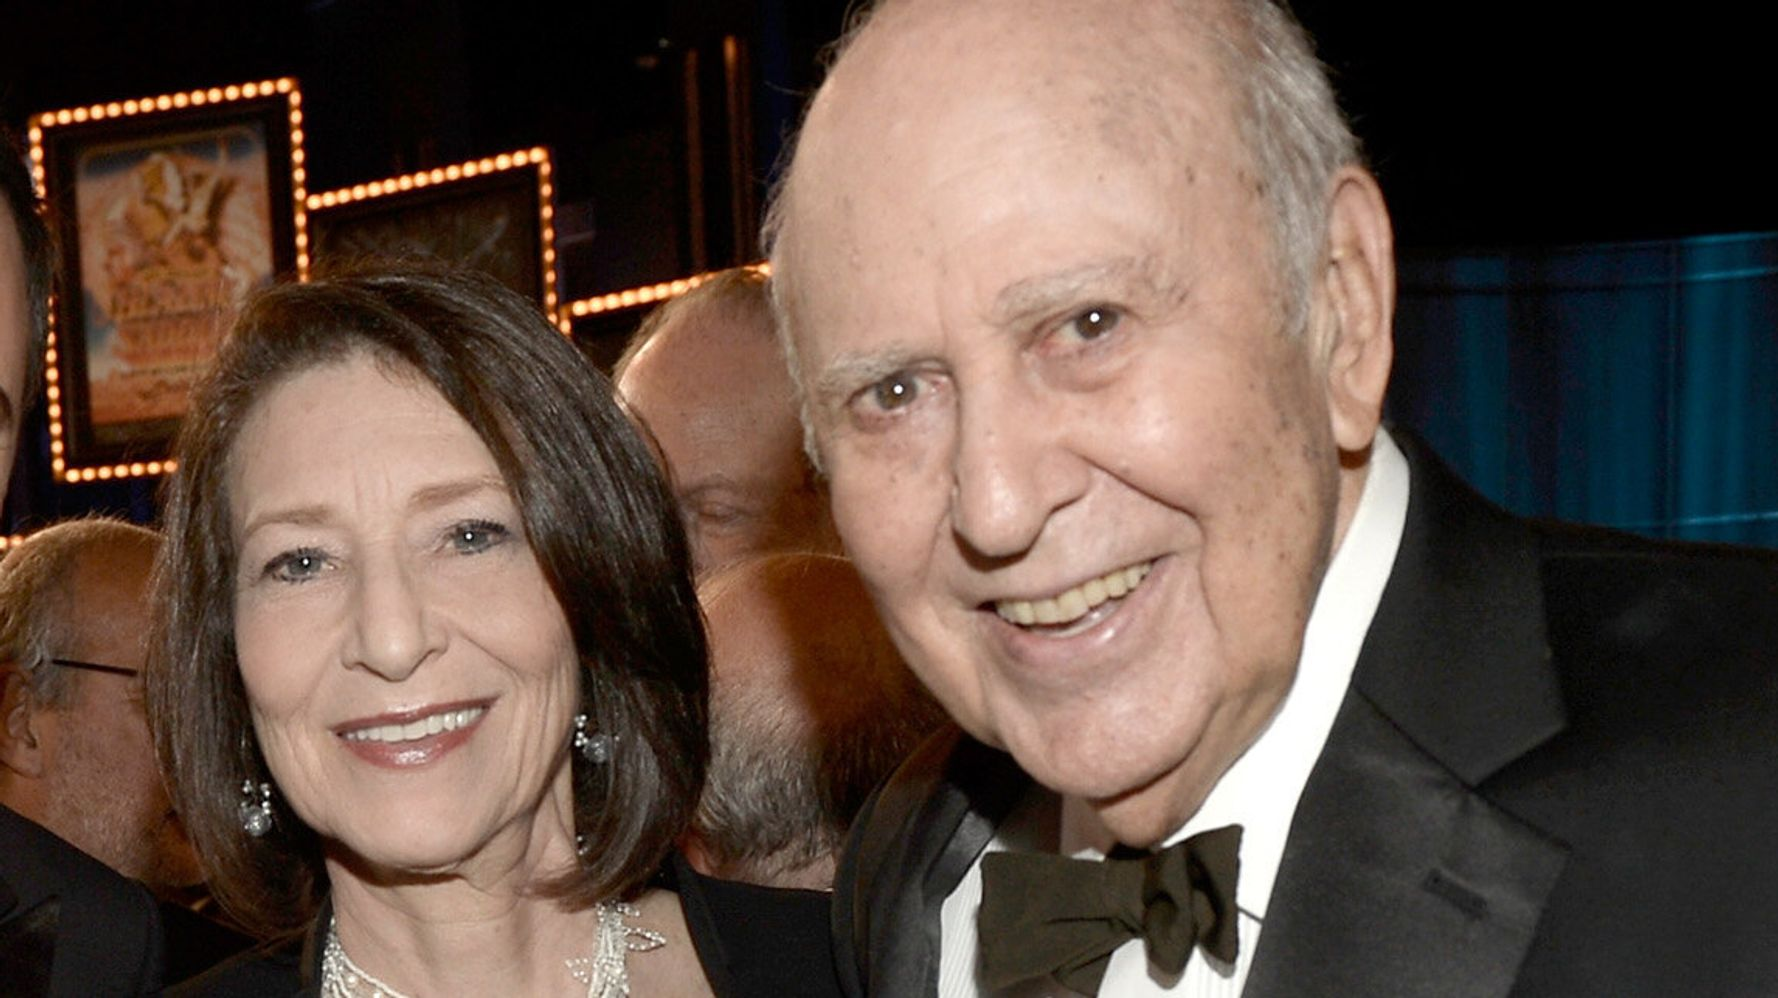 Carl Reiner's Daughter Tweets Final Dig At Donald Trump On Her Late Father's Behalf - HuffPost